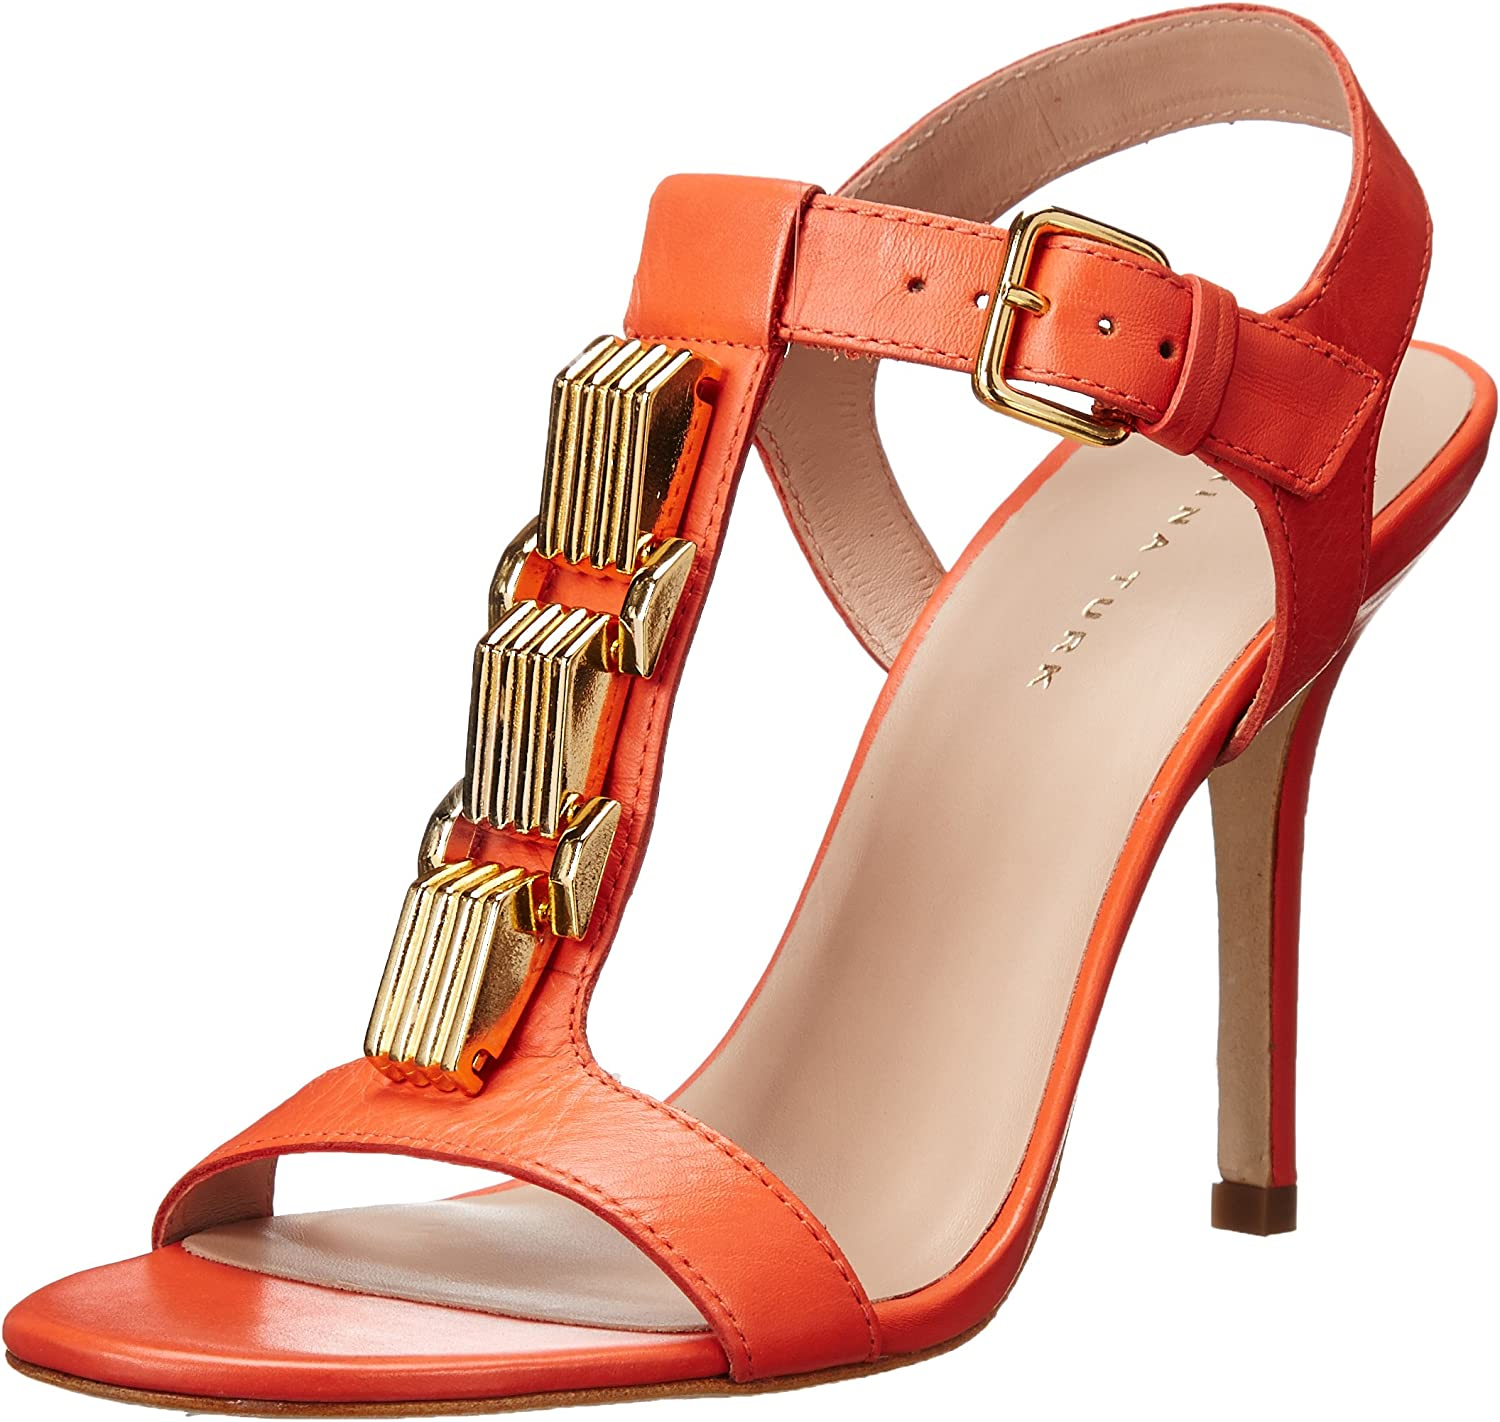 Trina Turk Women's Loyola Dress Sandal